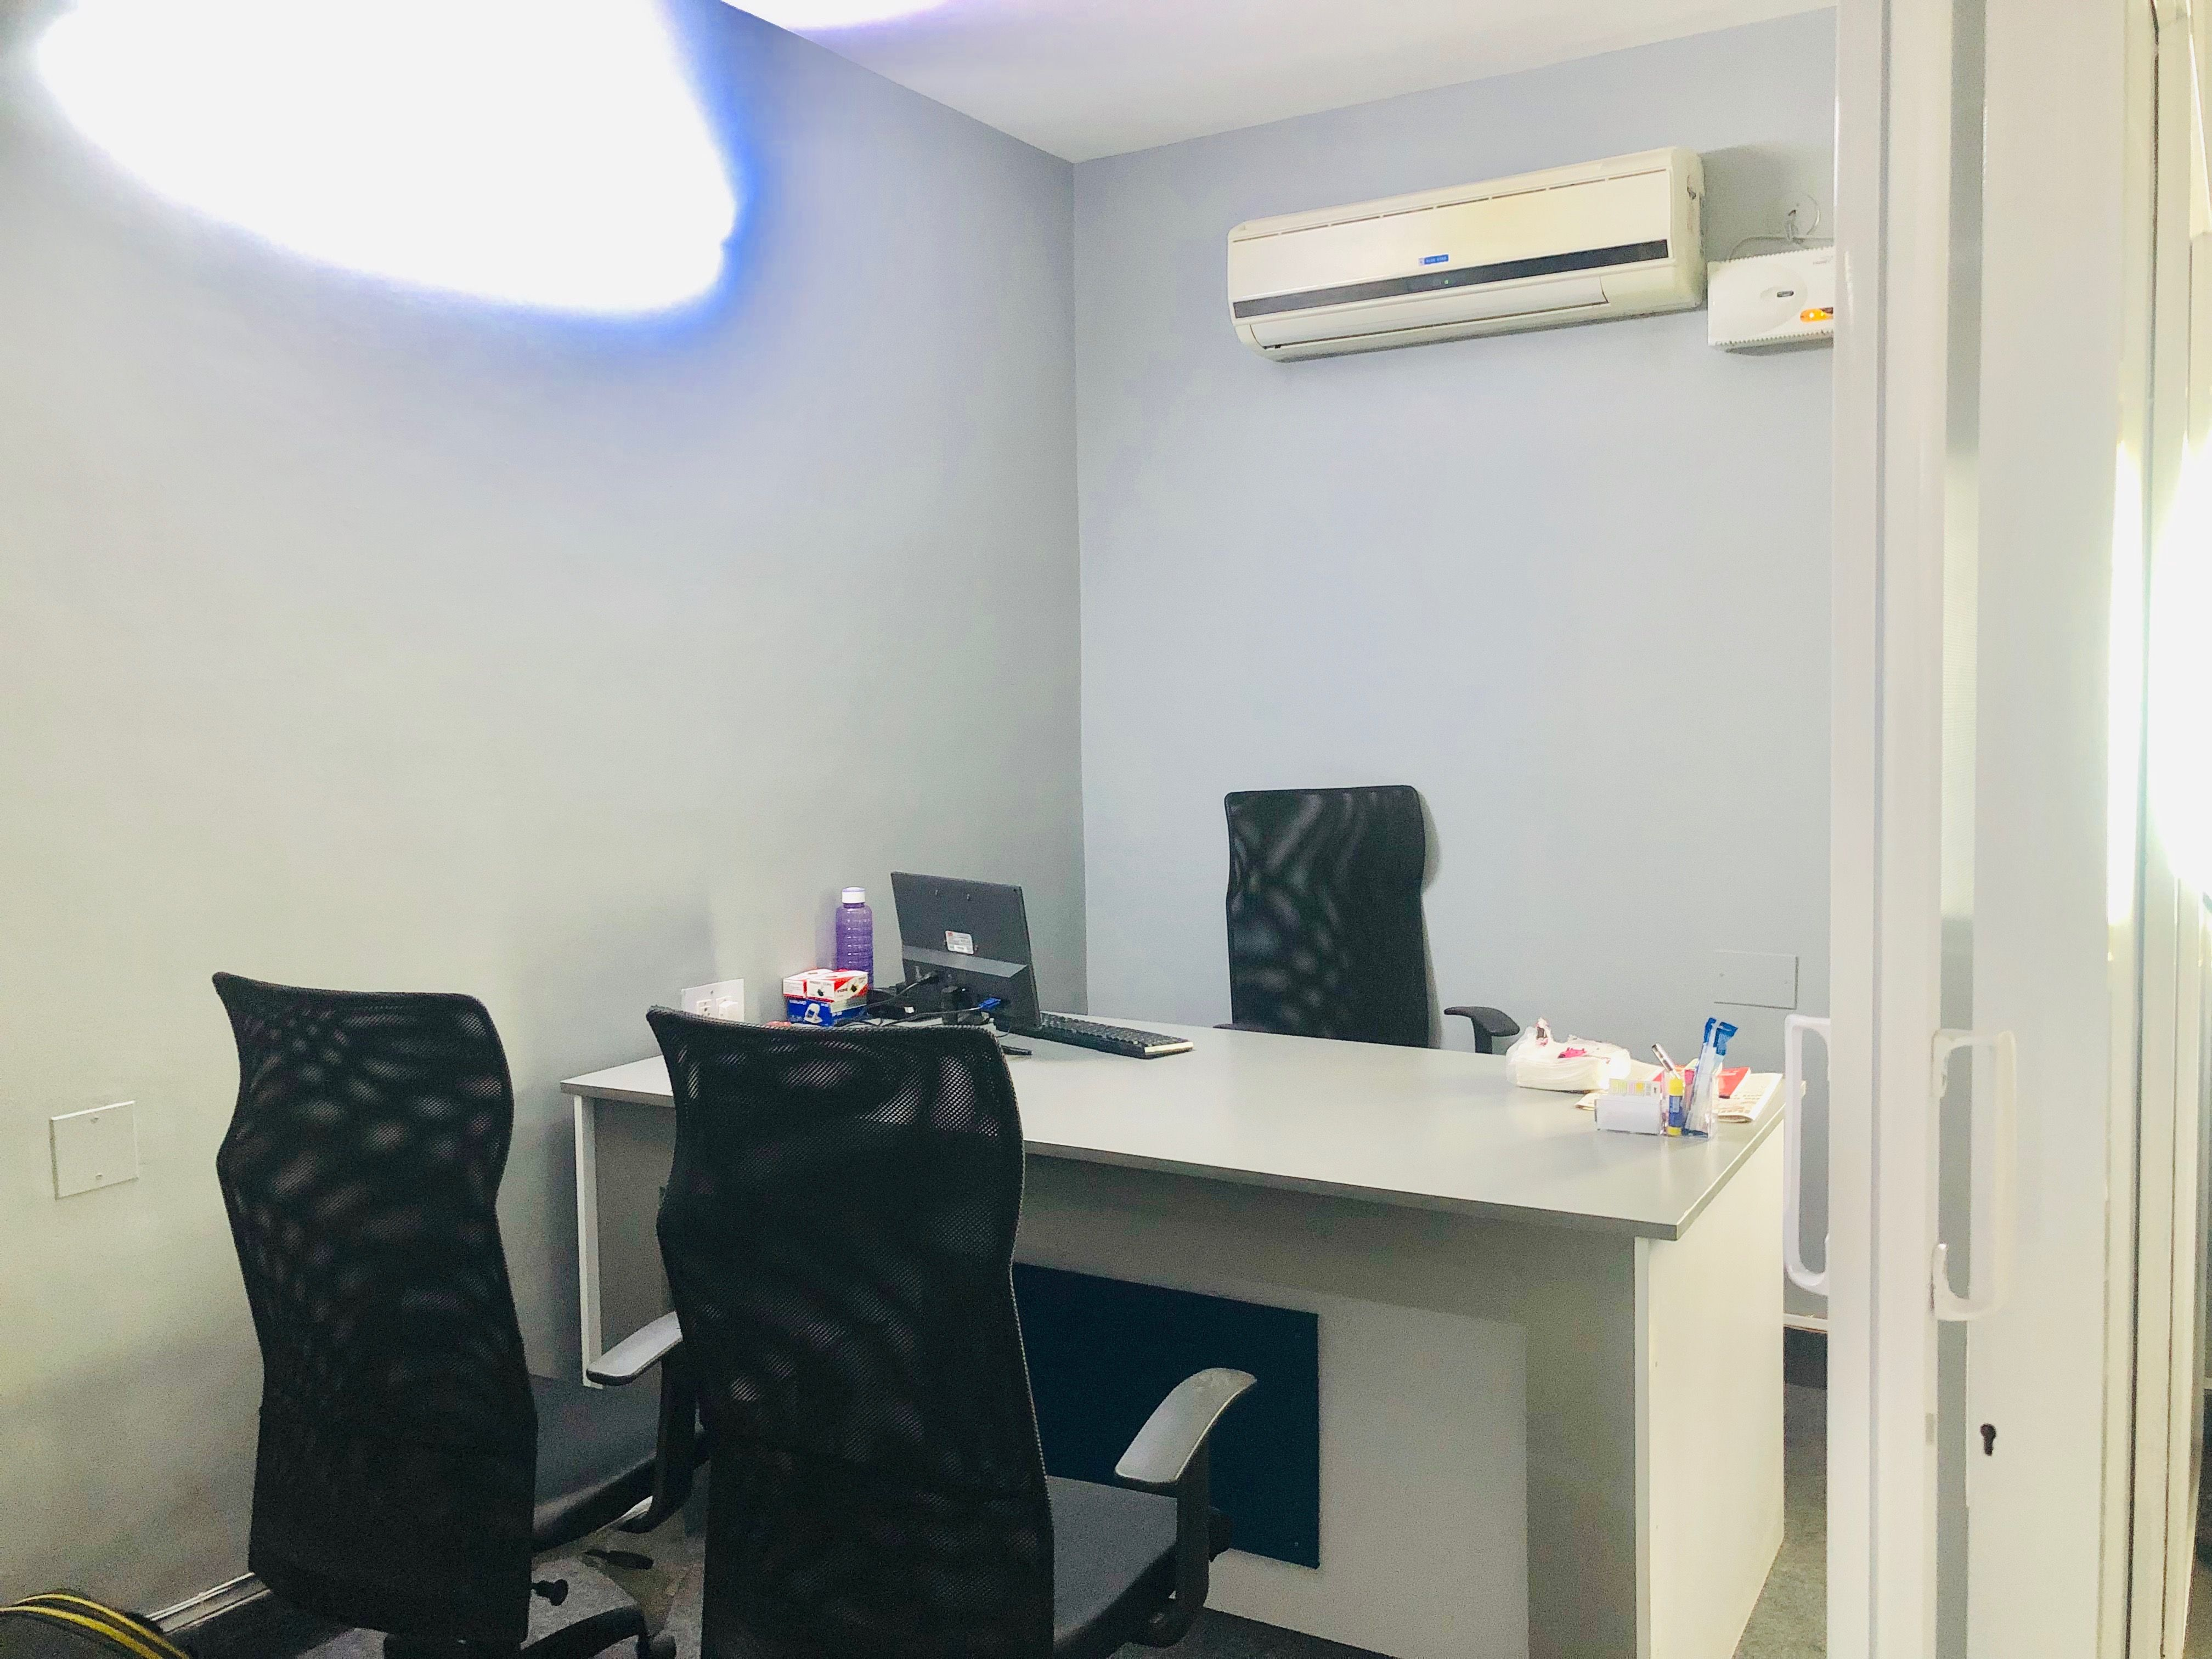 Office Space For Lease In Bangalore Furnished Office Bangalore Www Shareofficesolutions Com Office Space For Lease Shared Office Coworking Space